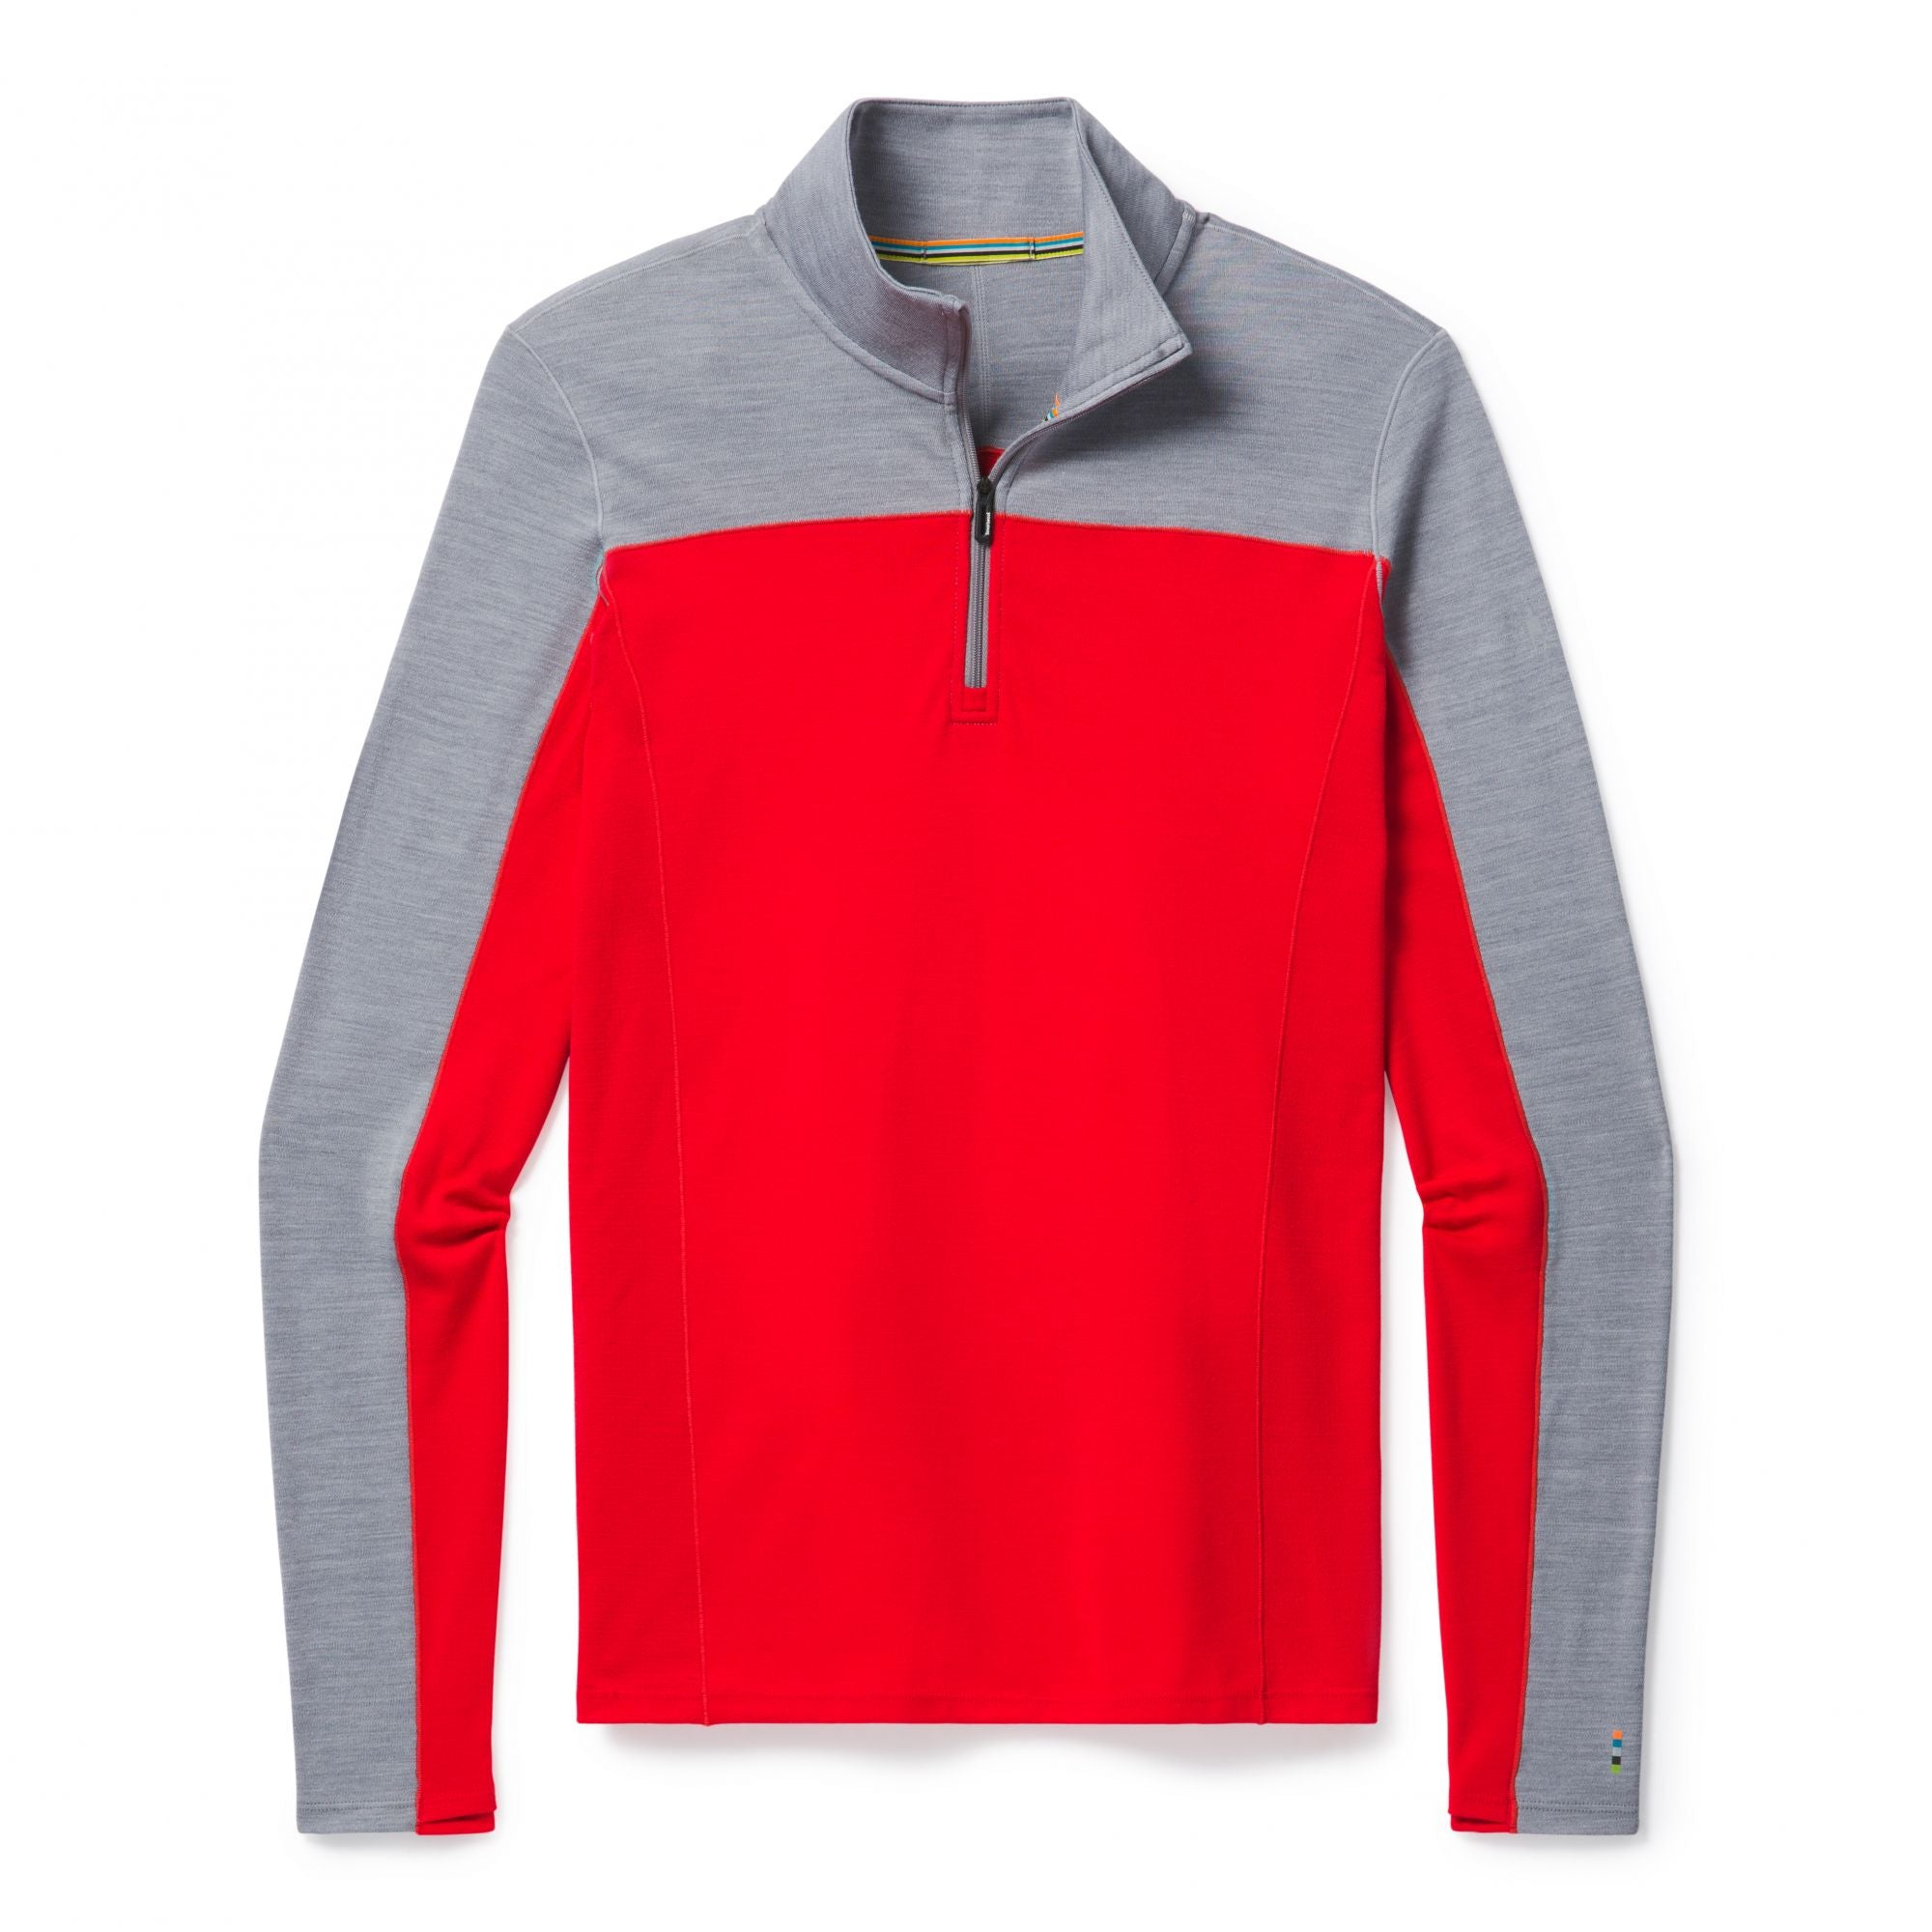 Men's Merino Sport 250 Long Sleeve 1/4 Zip